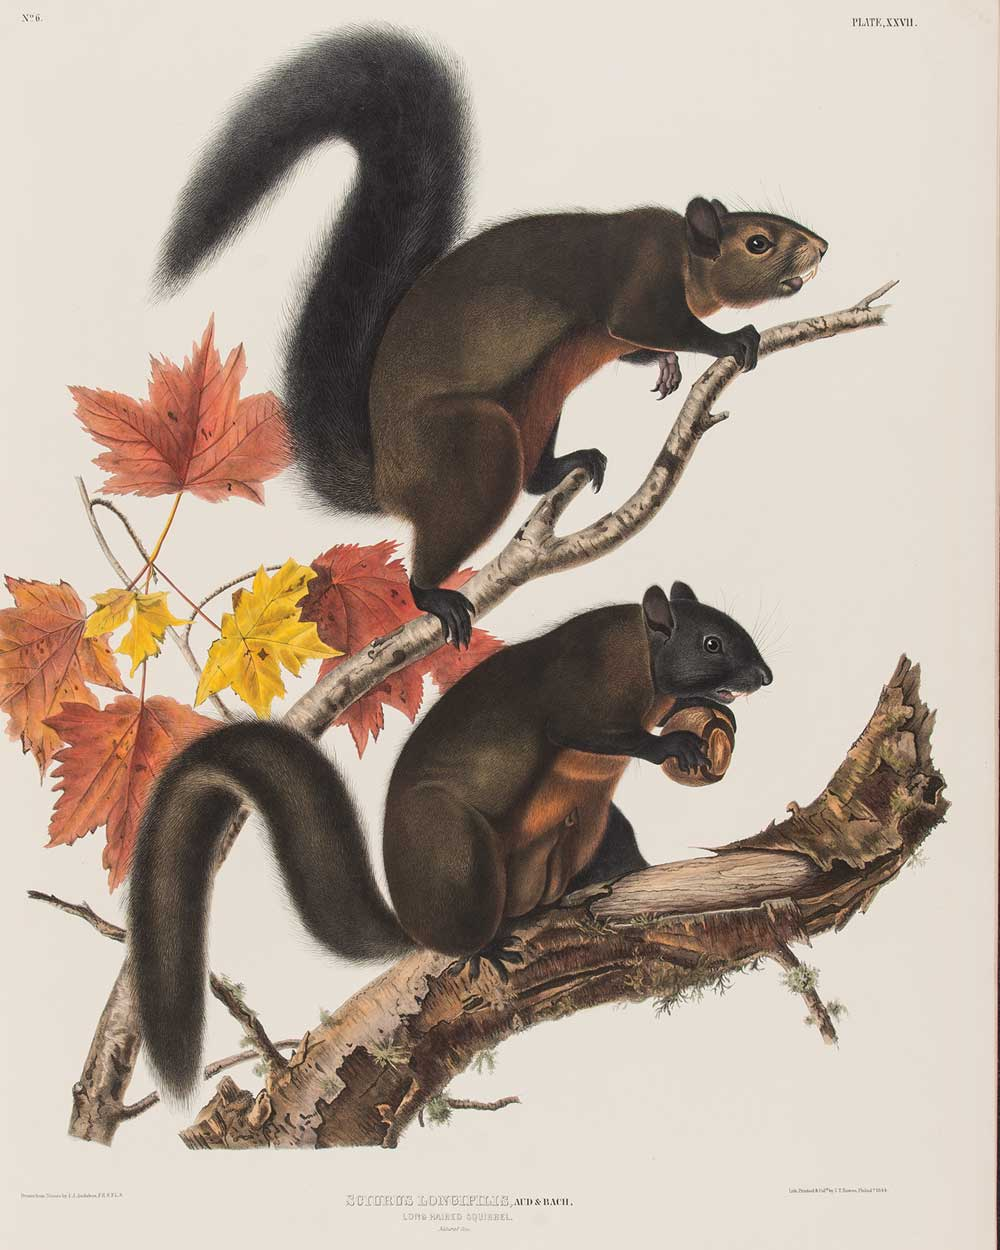 Two long-haired squirrels on a branch.